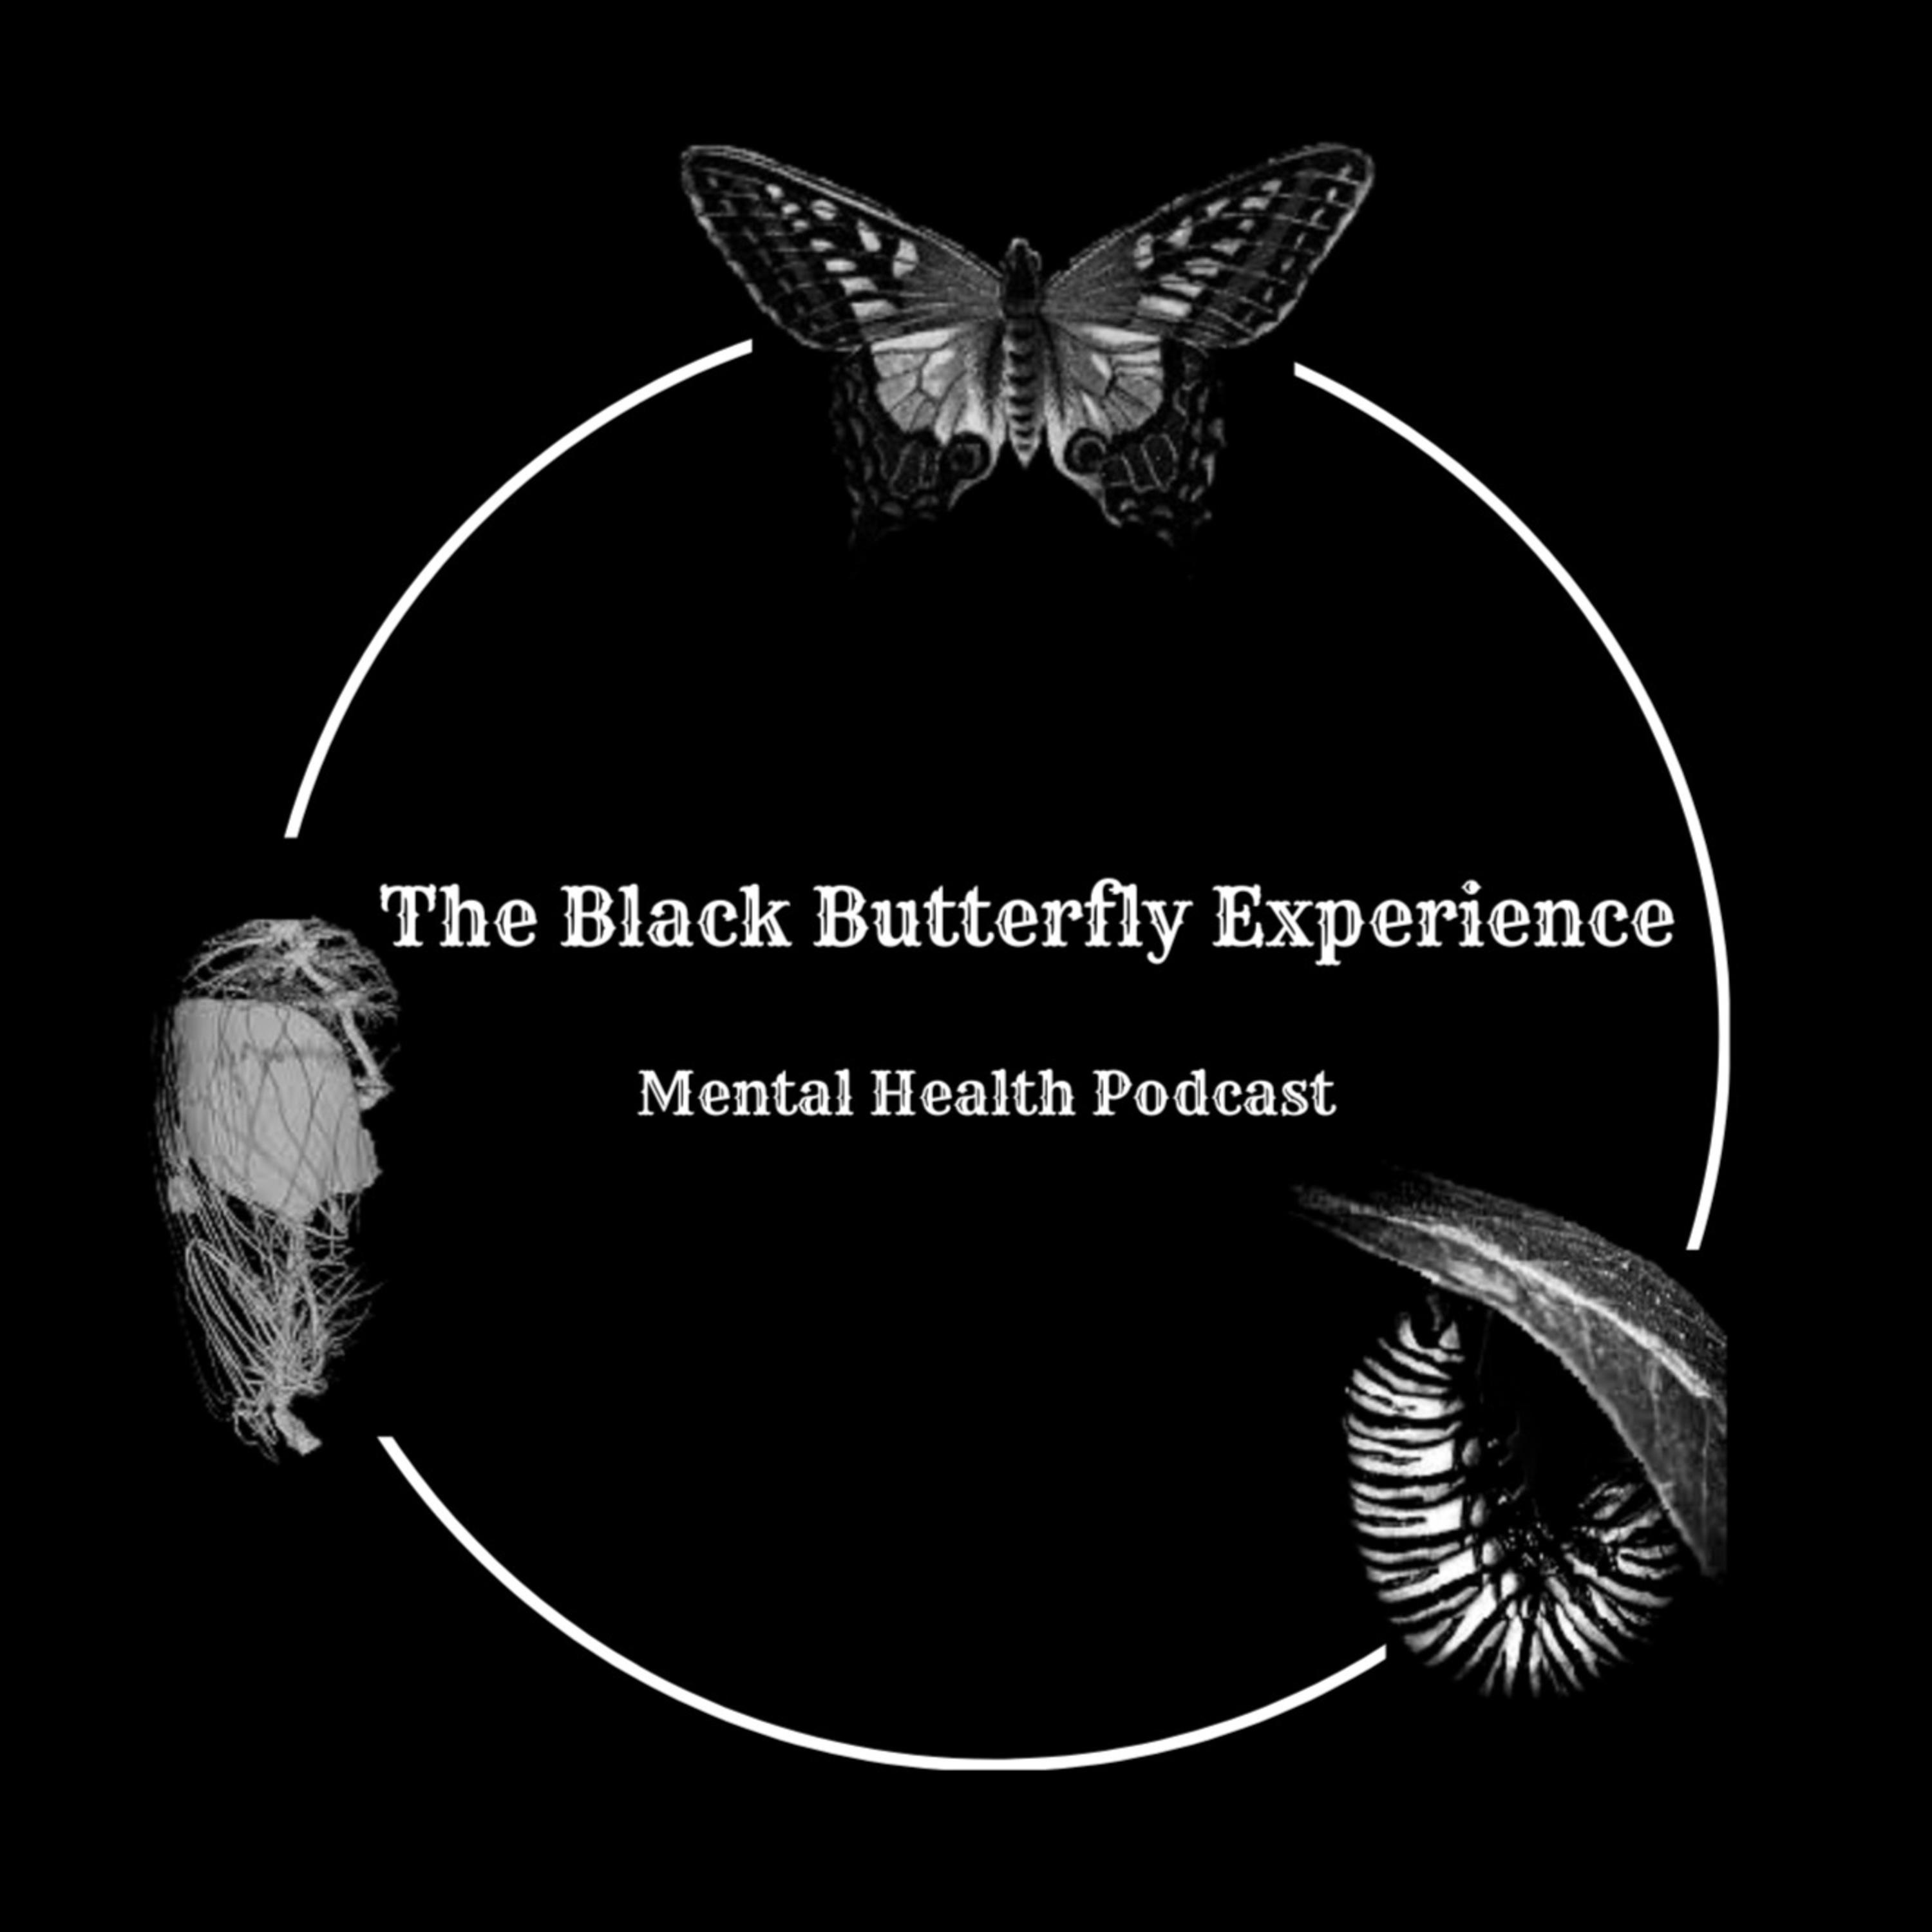 The Black Butterfly Experience Podcast